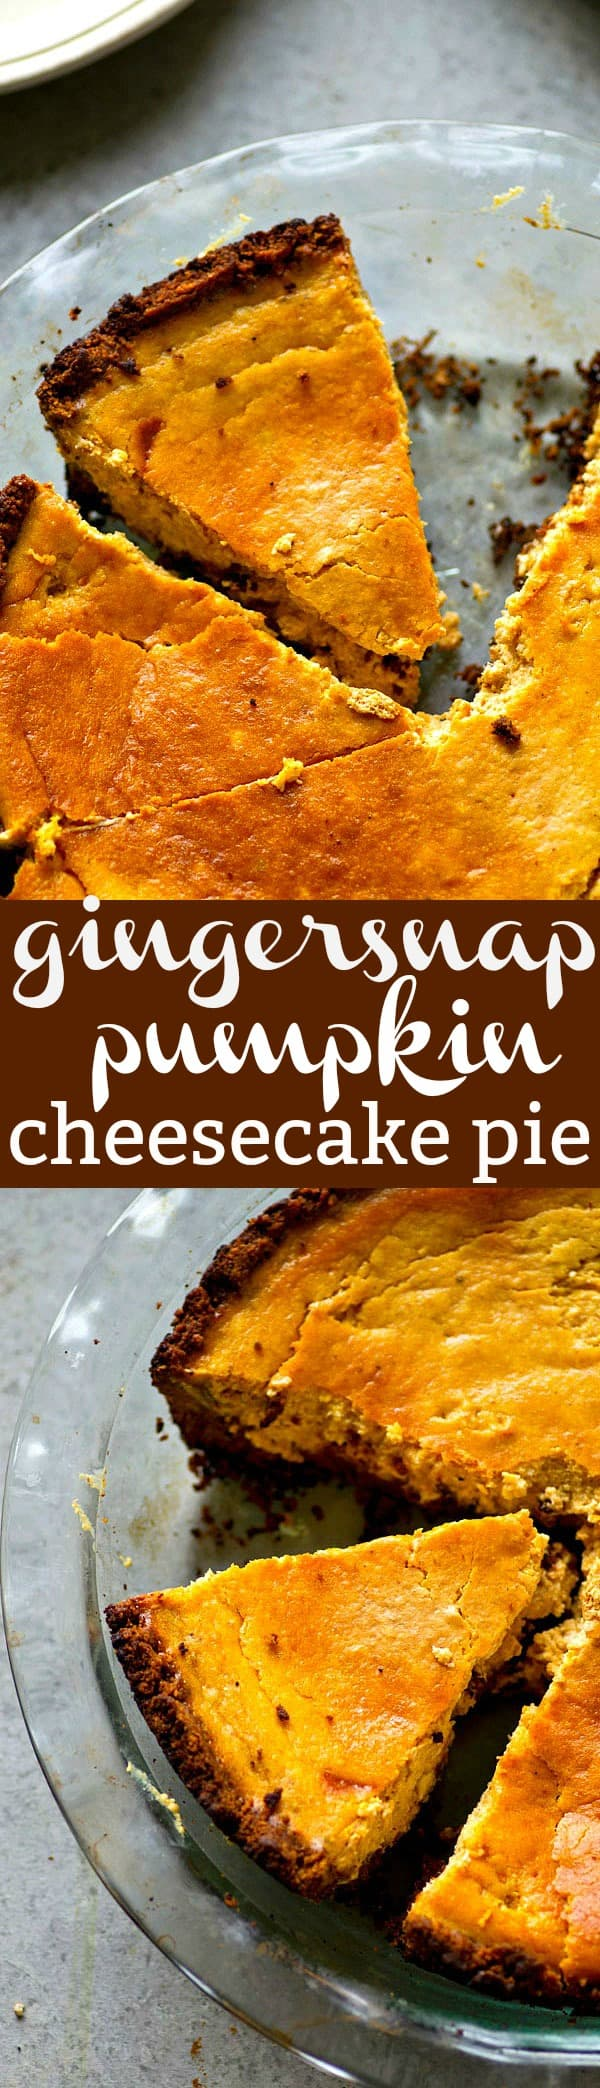 Sweet 'n' spicy gingersnap cookies make an insanely good crust for this seasonal twist on pumpkin cheesecake pie! It's rich, silky, and you'll definitely want it on your Thanksgiving pie table!